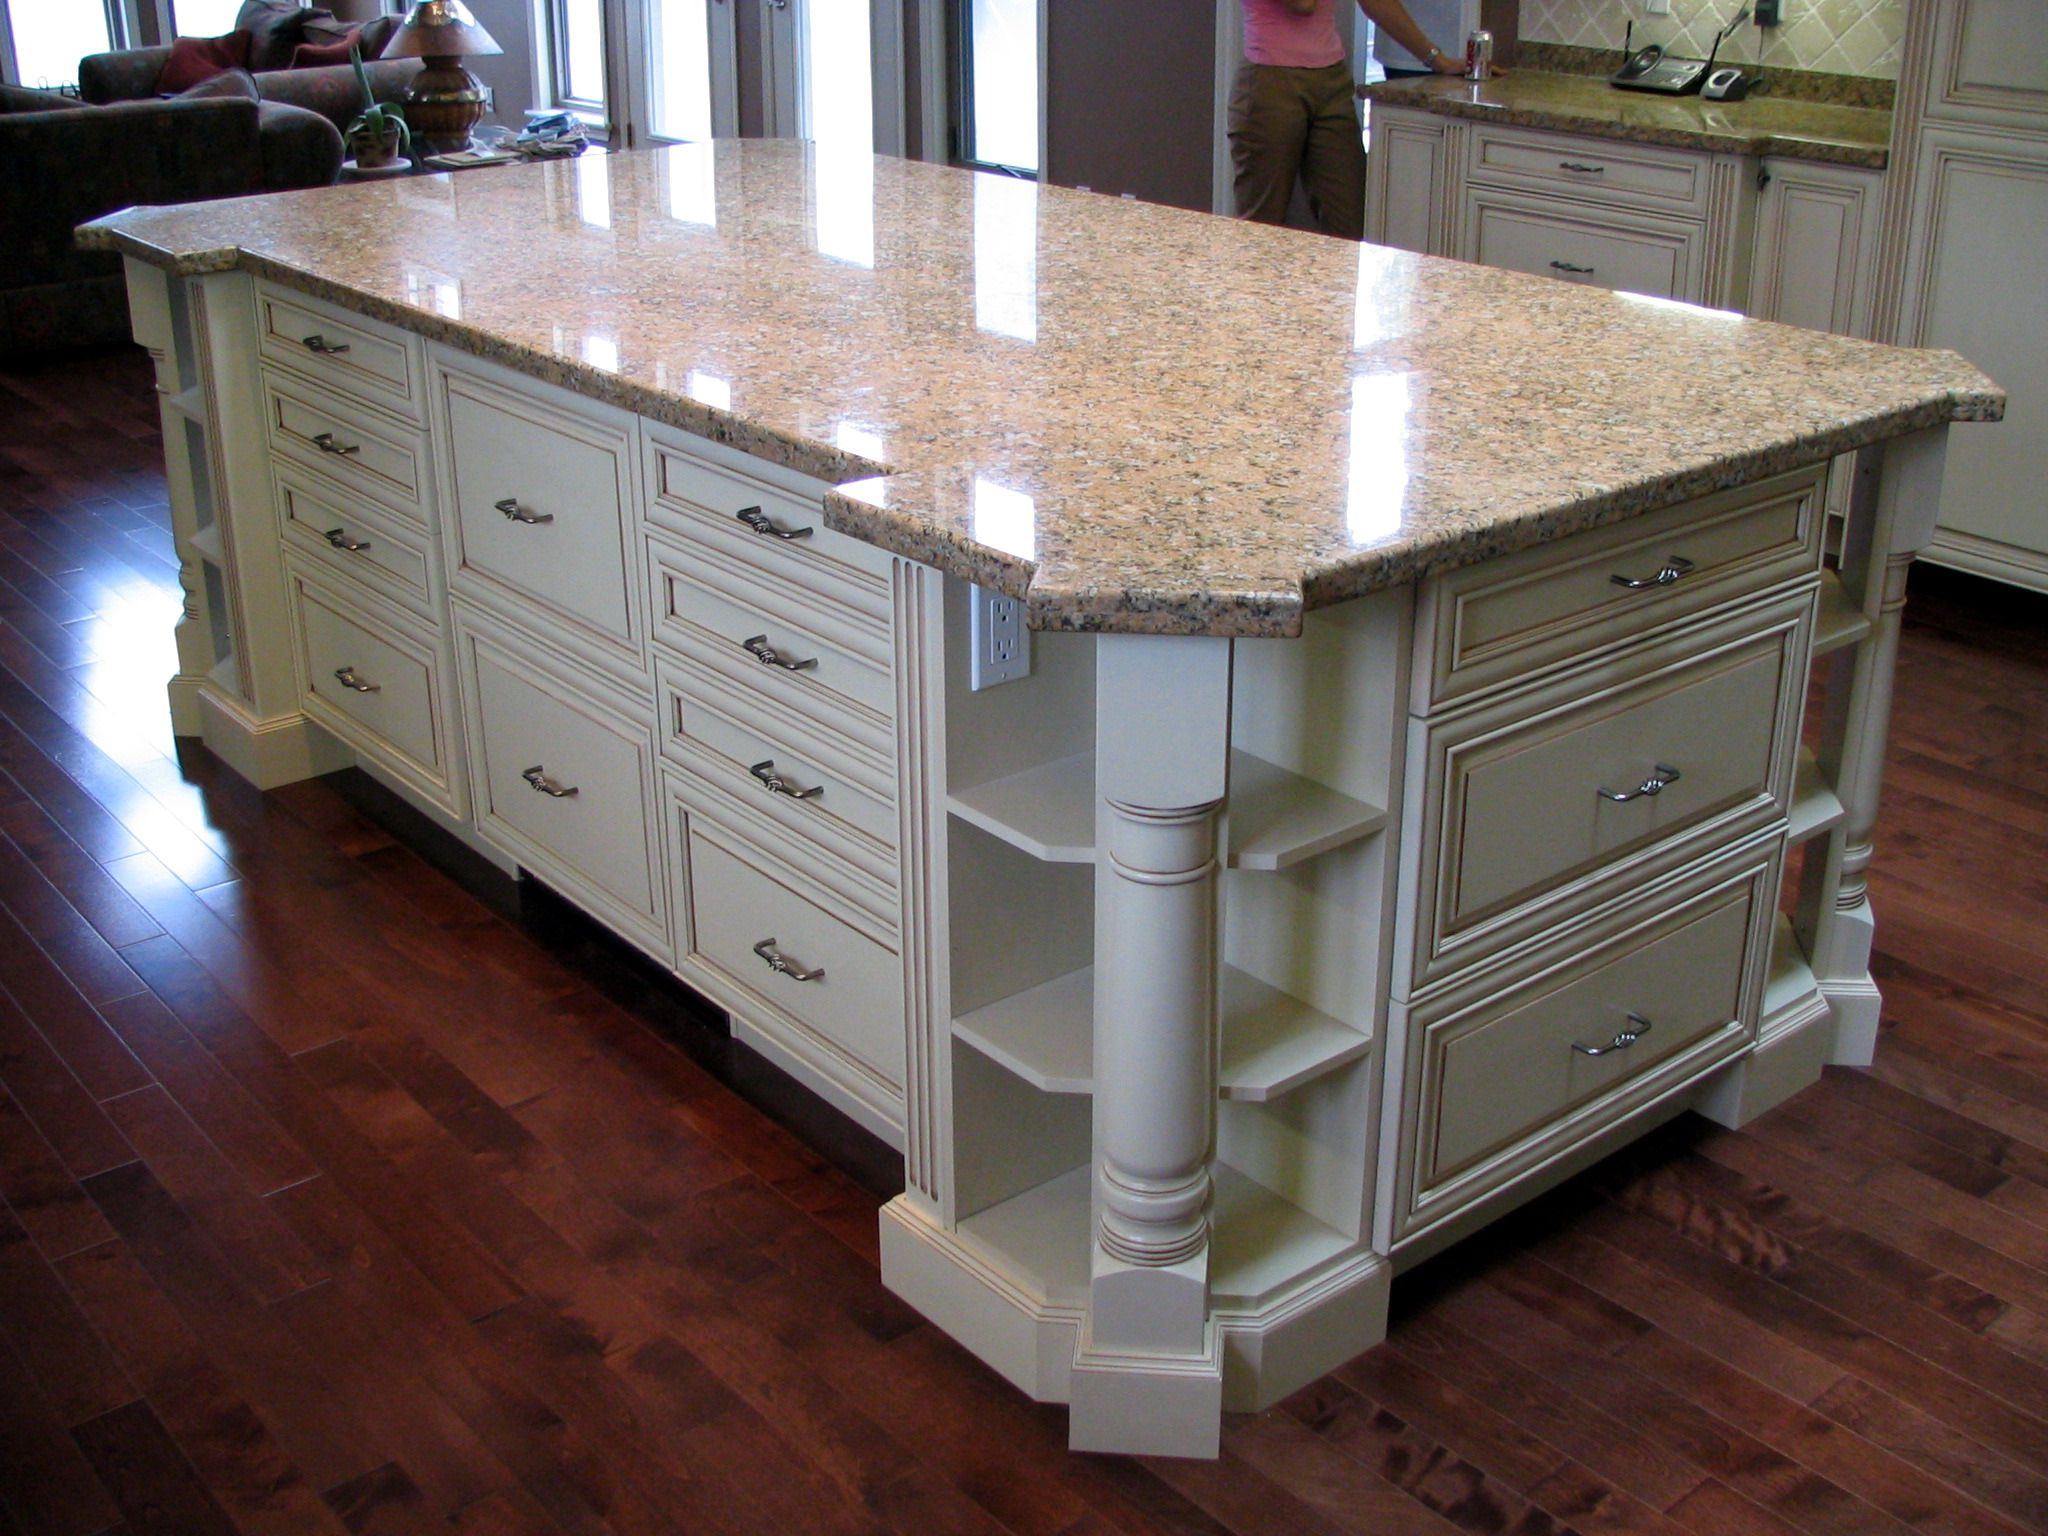 kitchen island outlet glass backsplashes for kitchens large featuring open corner shelves with